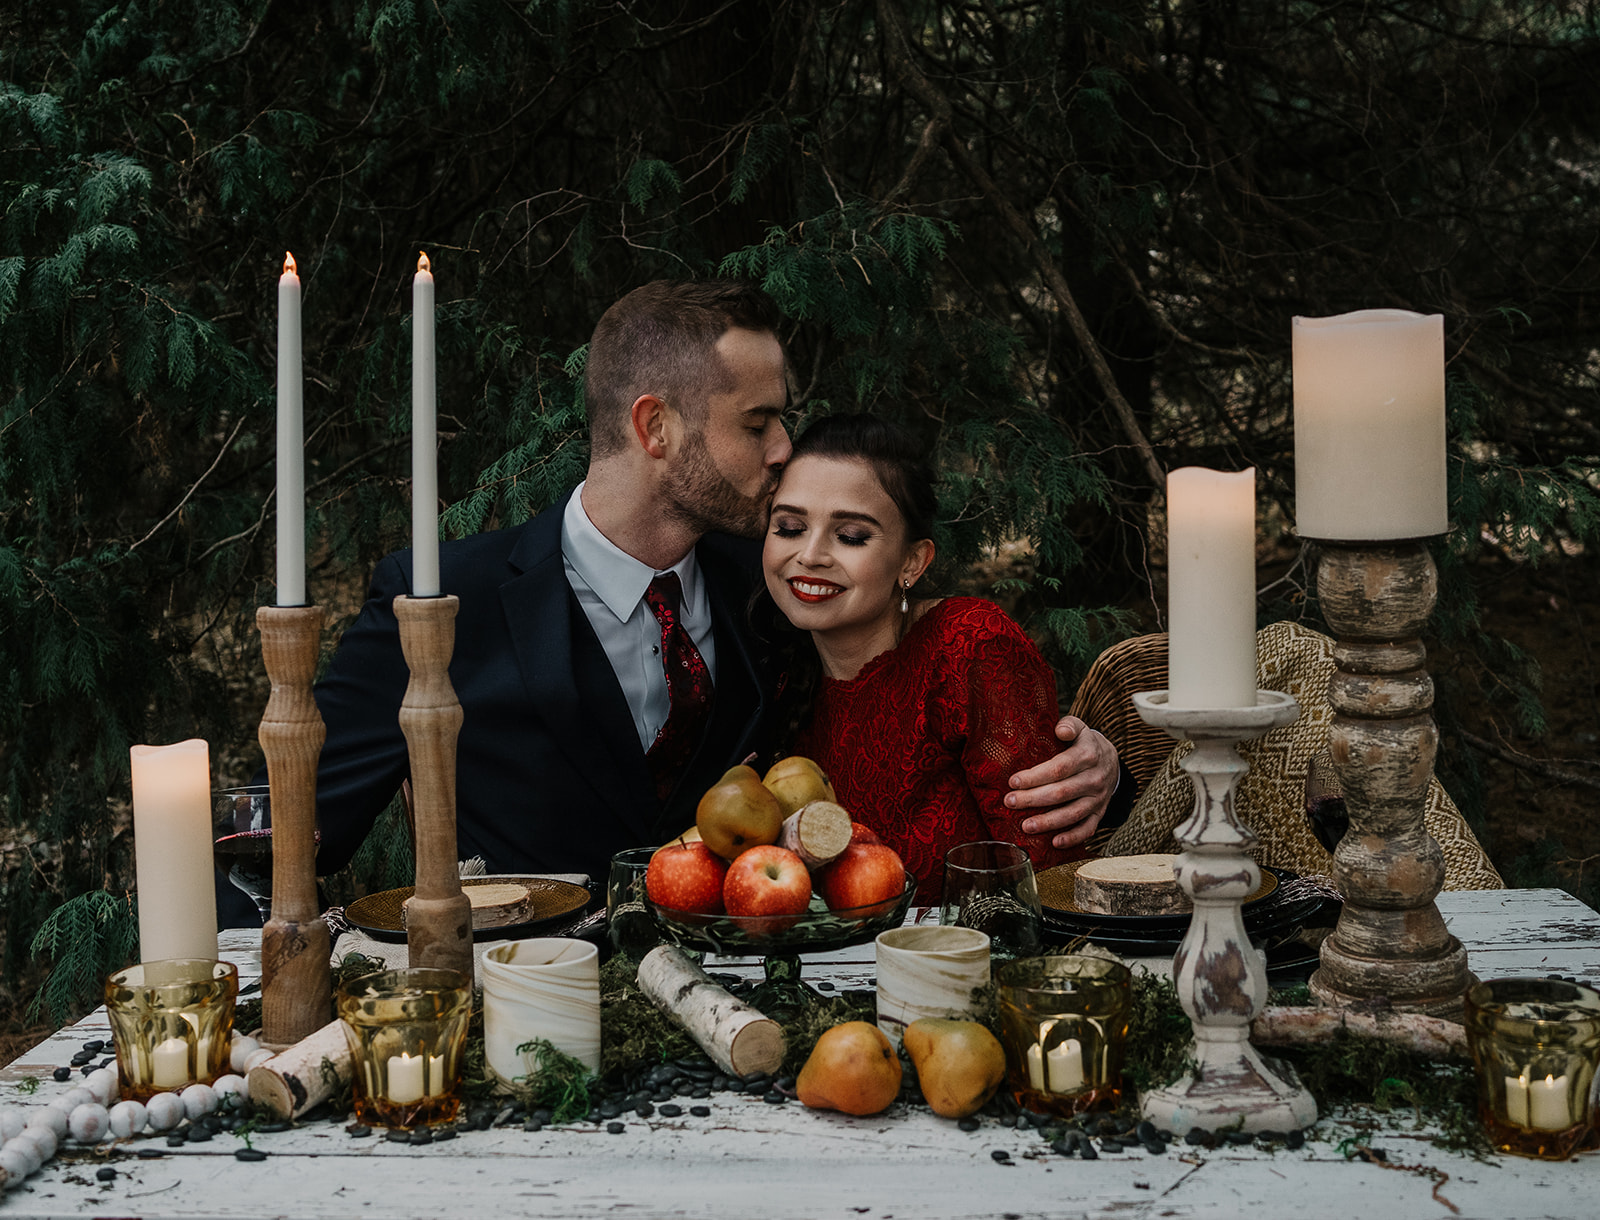 wedding coupe in woodland setting with large wooden rustic candles, birch wood sticks, and colorful apples and pears